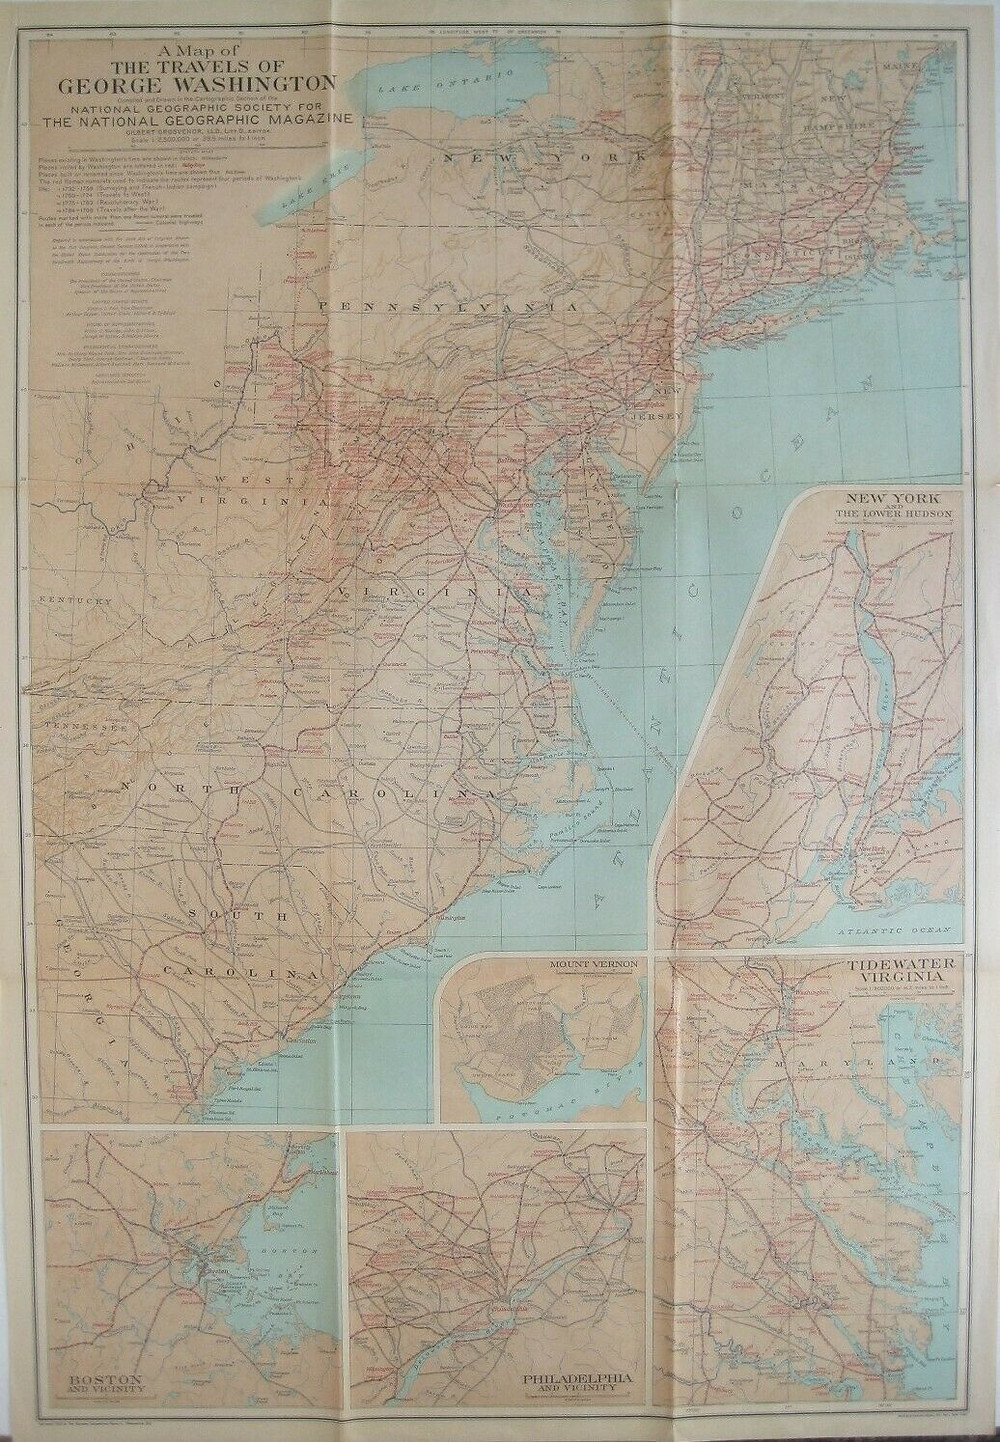 Vintage fold-out 1932 color lithographed map showing the travels of George Washington, printed more than 88 years ago.